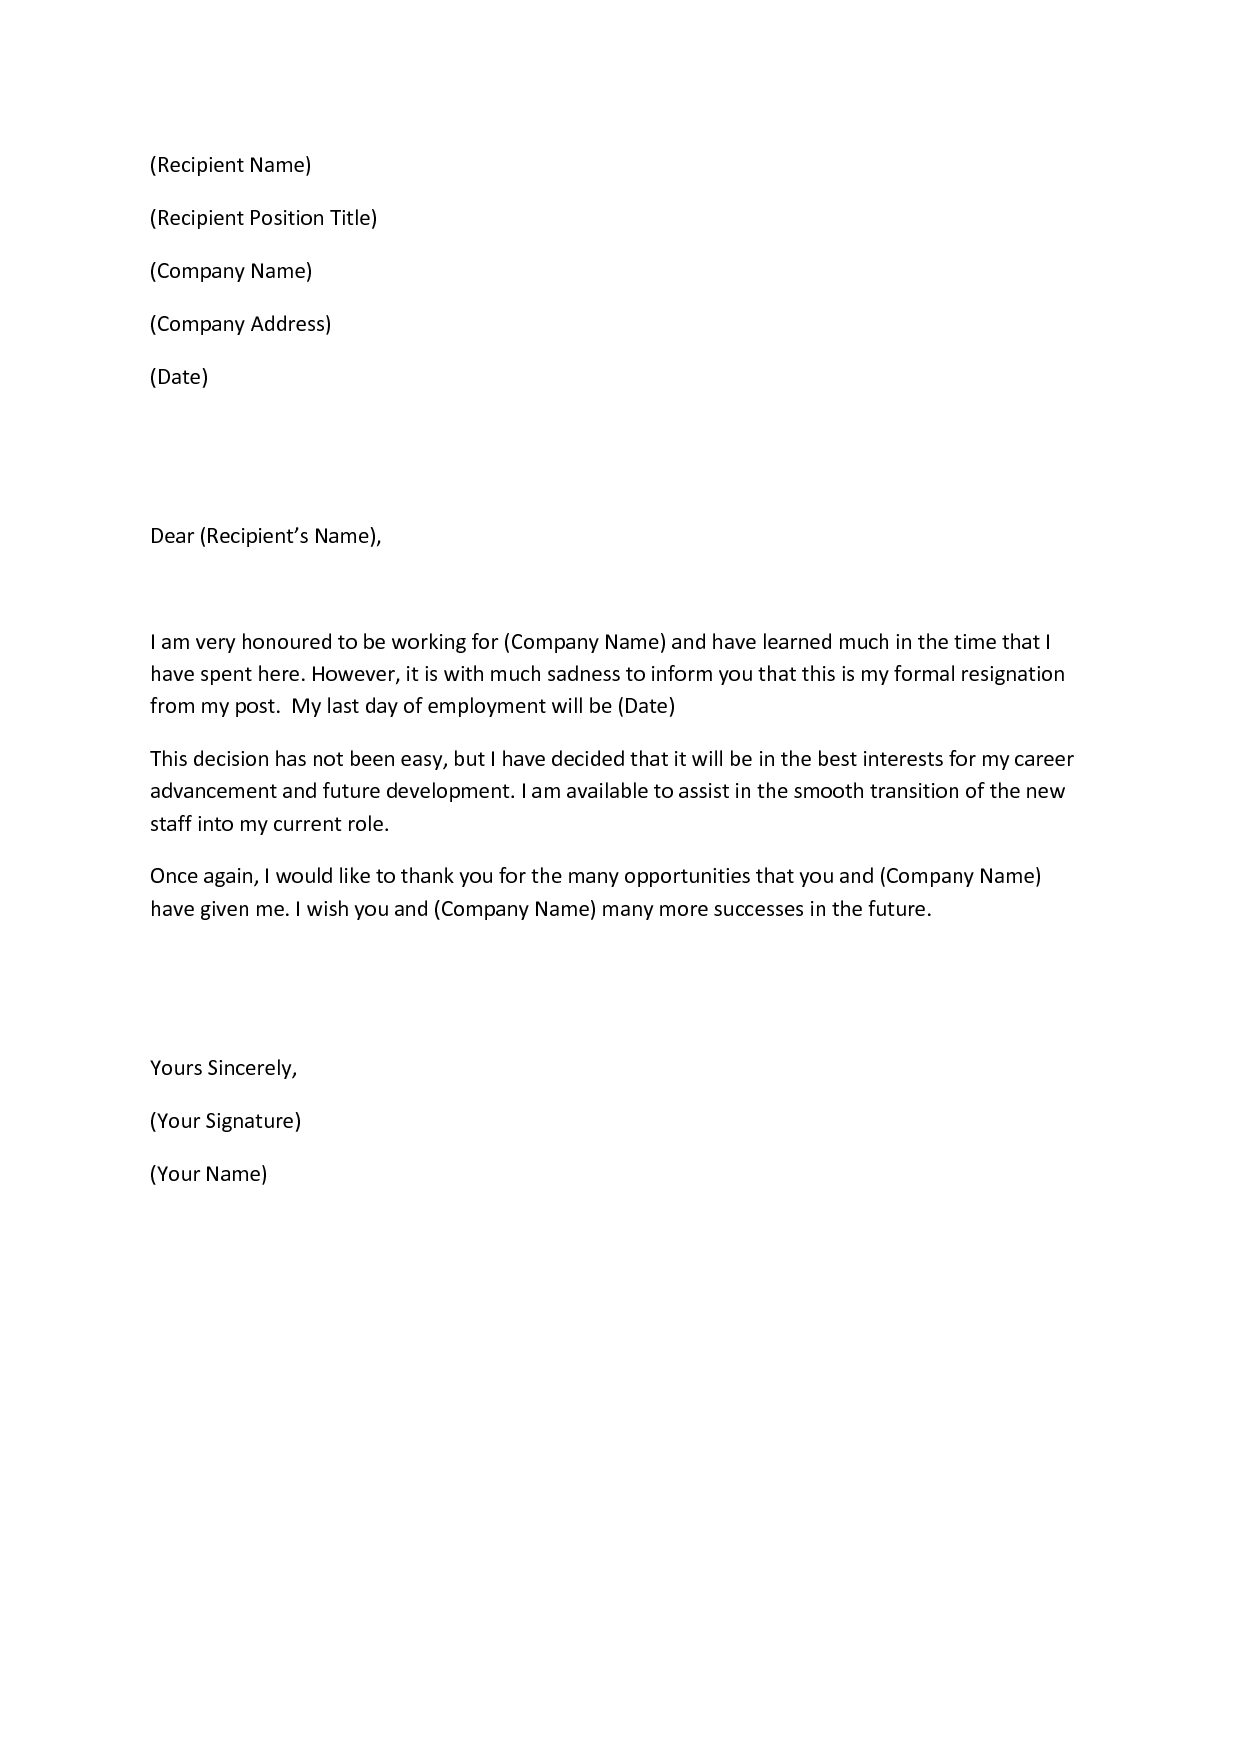 best ideas about letter for resignation format 17 best ideas about letter for resignation format for resignation letter simple resignation letter format and resignation letter